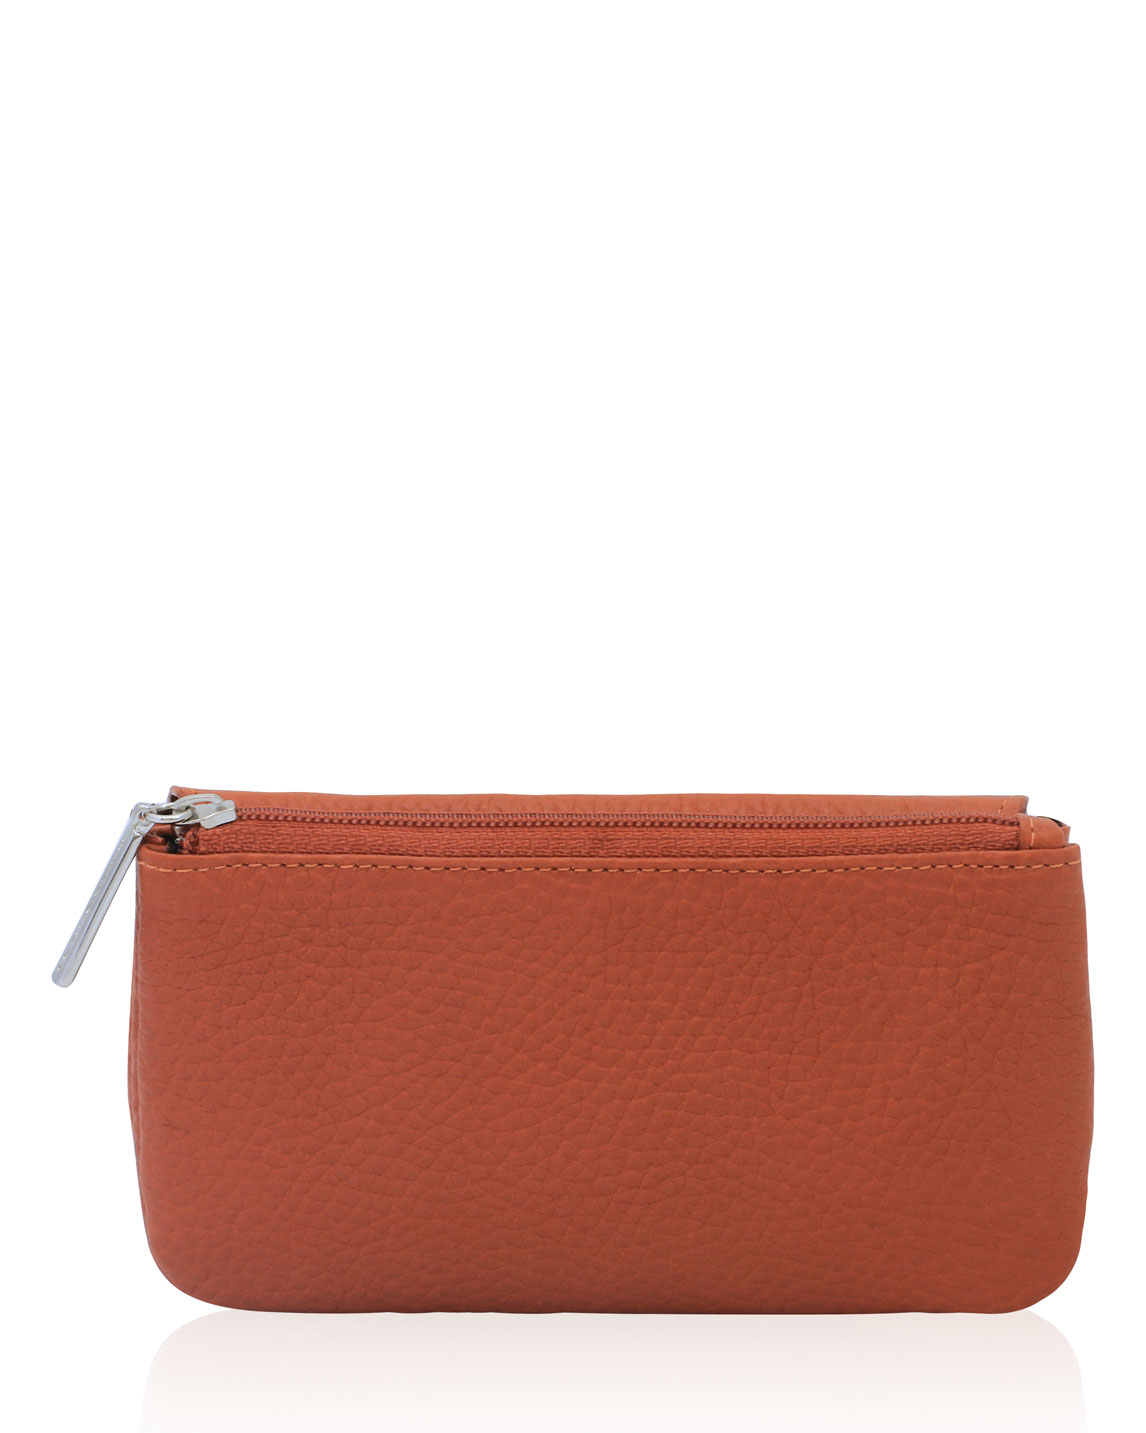 Monedero M-64 Color Naranja